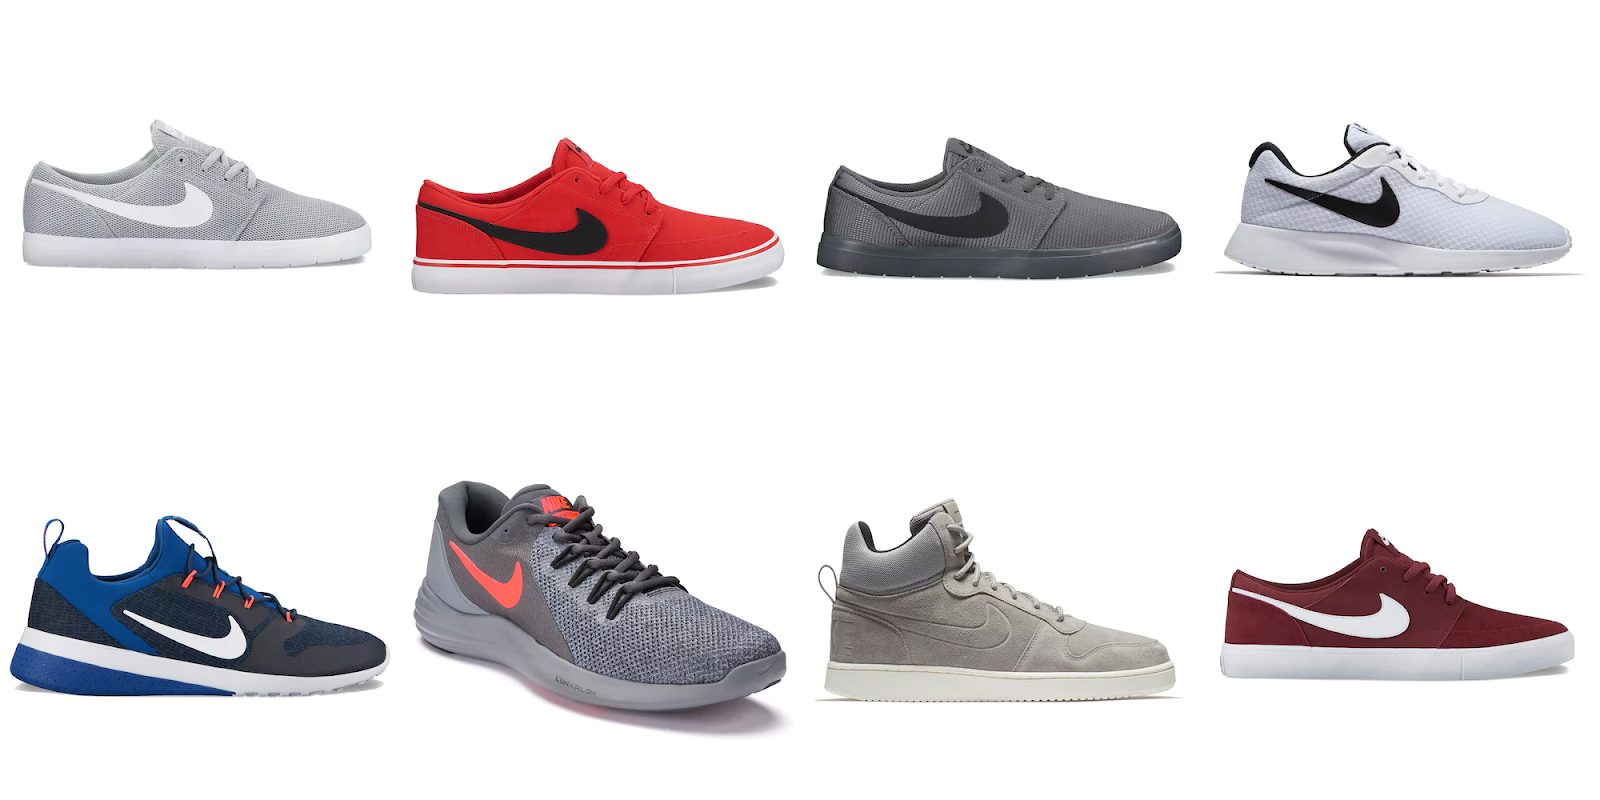 brand new b911b 96544 closeout nike lunar running sneakers 6c2ad 25752  authentic kohls 30 40 nike  mens shoes requires kohls credit card 988e5 c2721